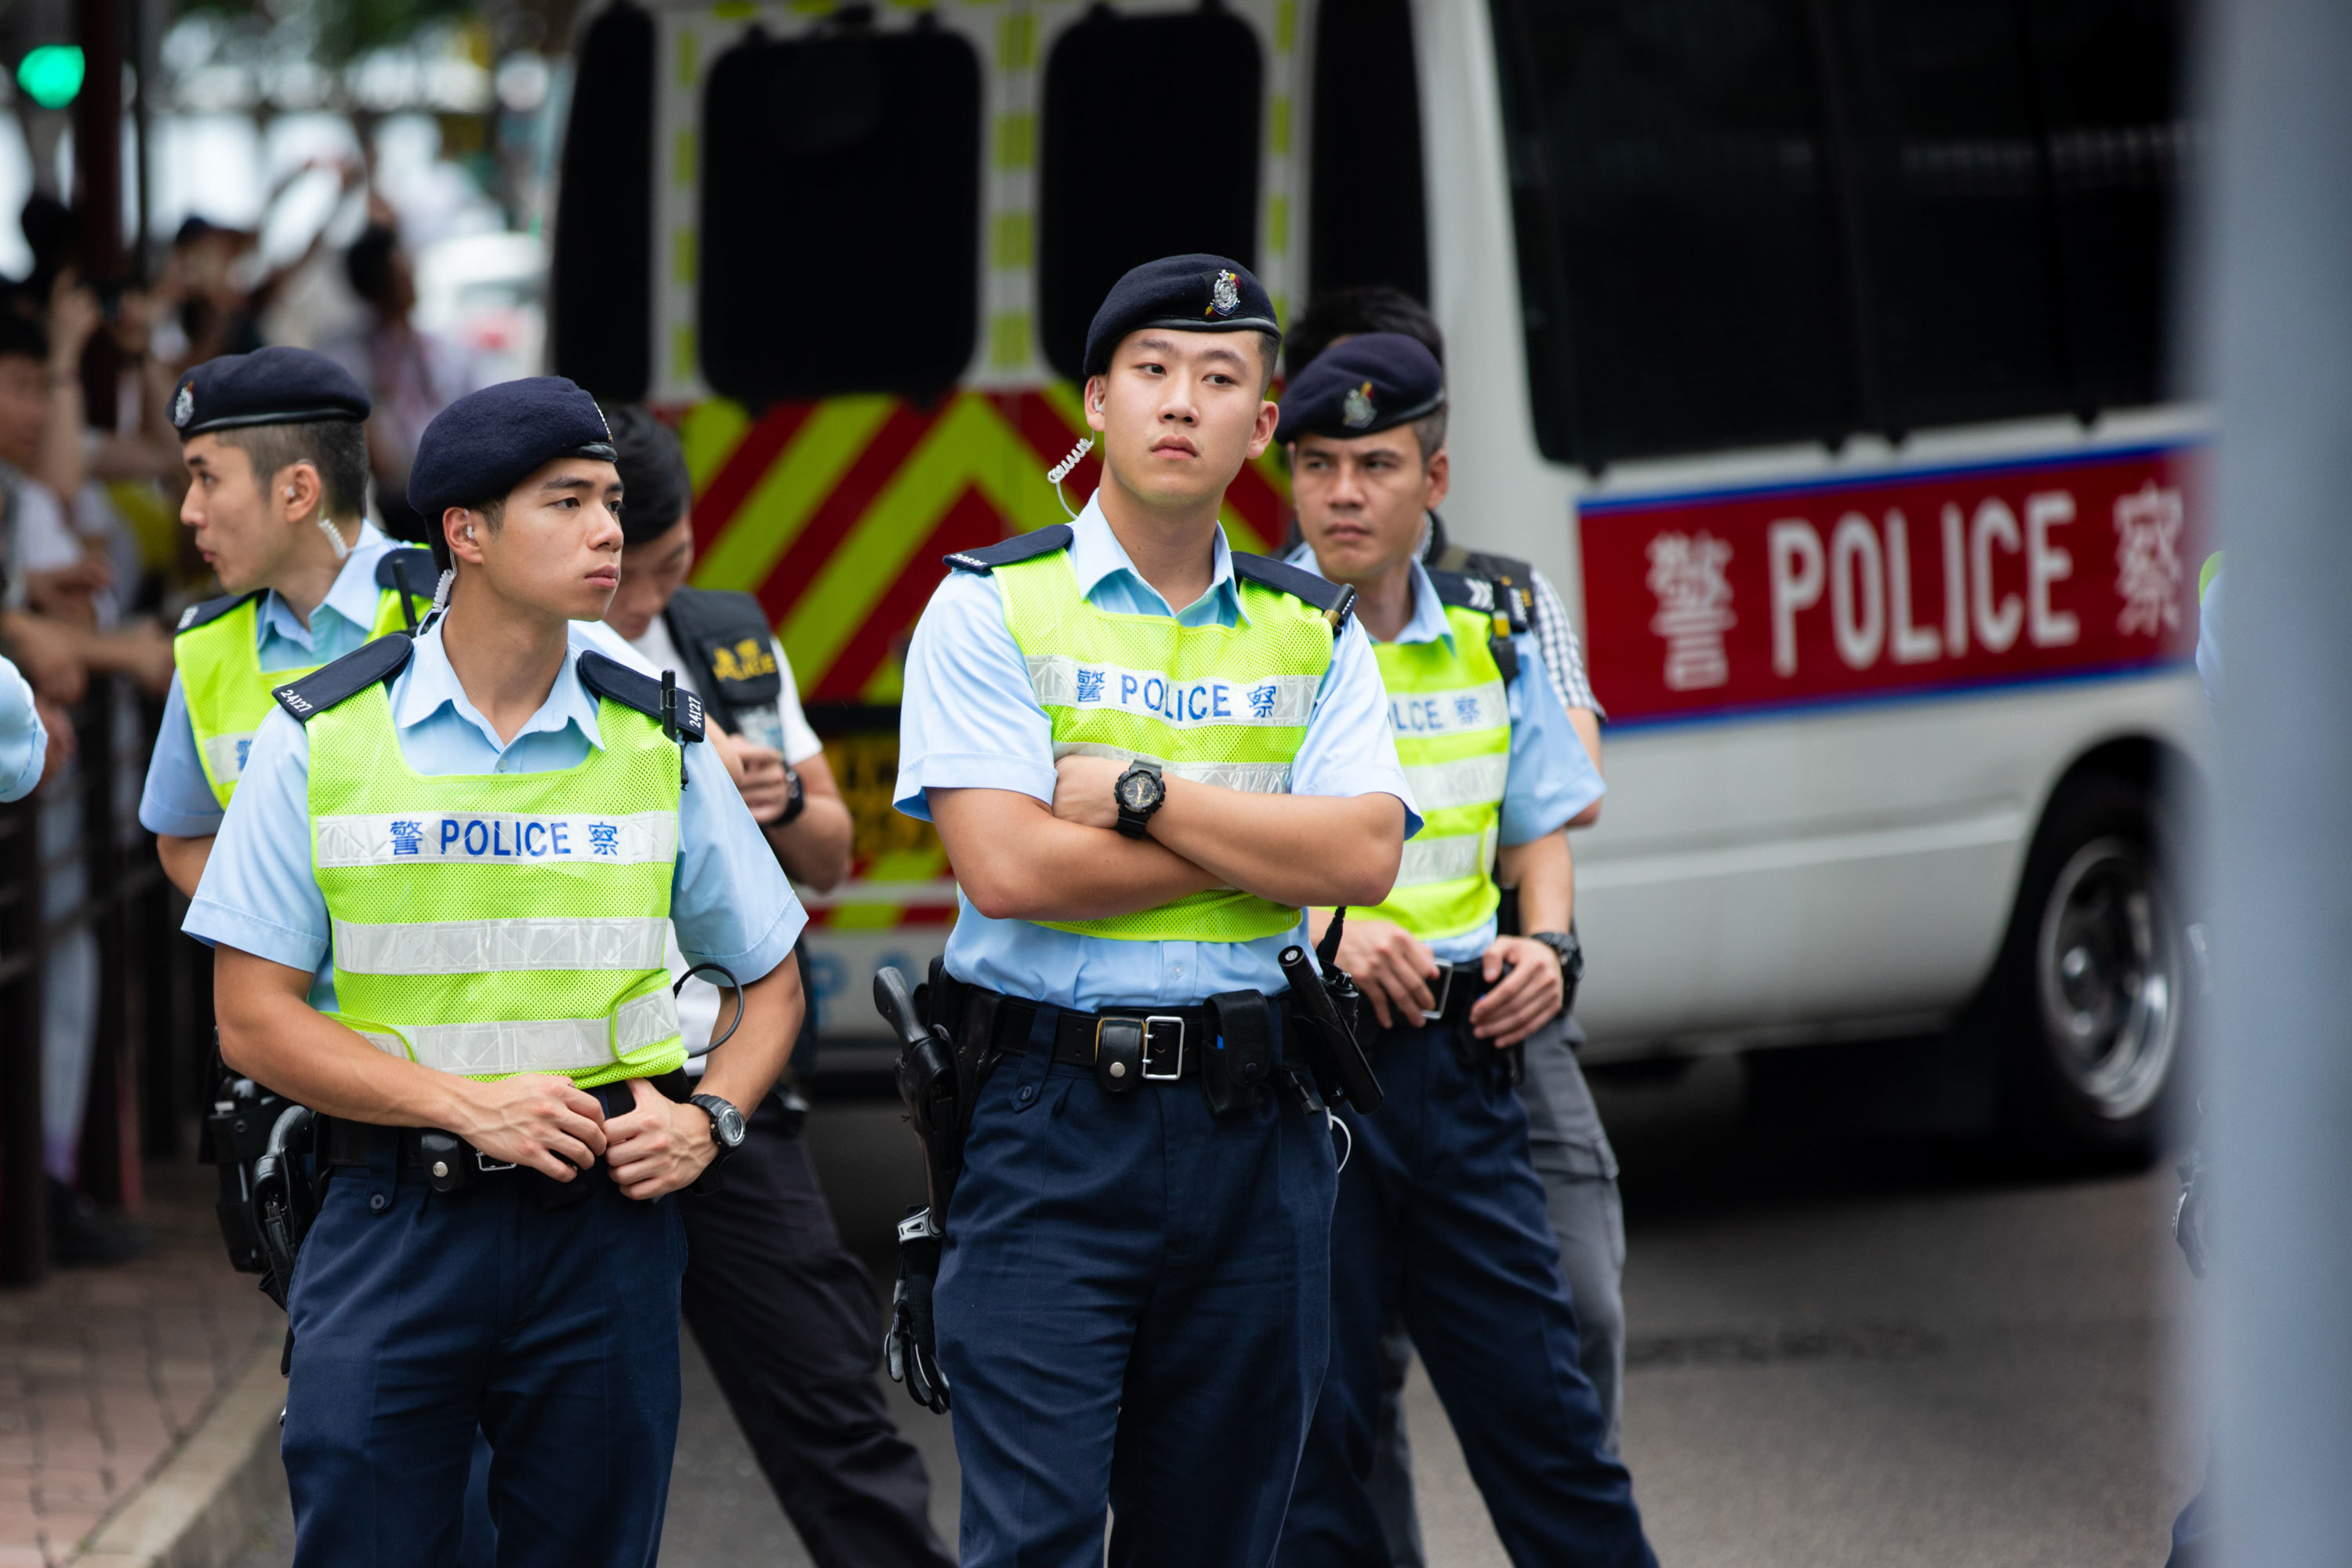 Hong Kong police officers have been jeered and criticized by protesters. (Saša Petricic/CBC)